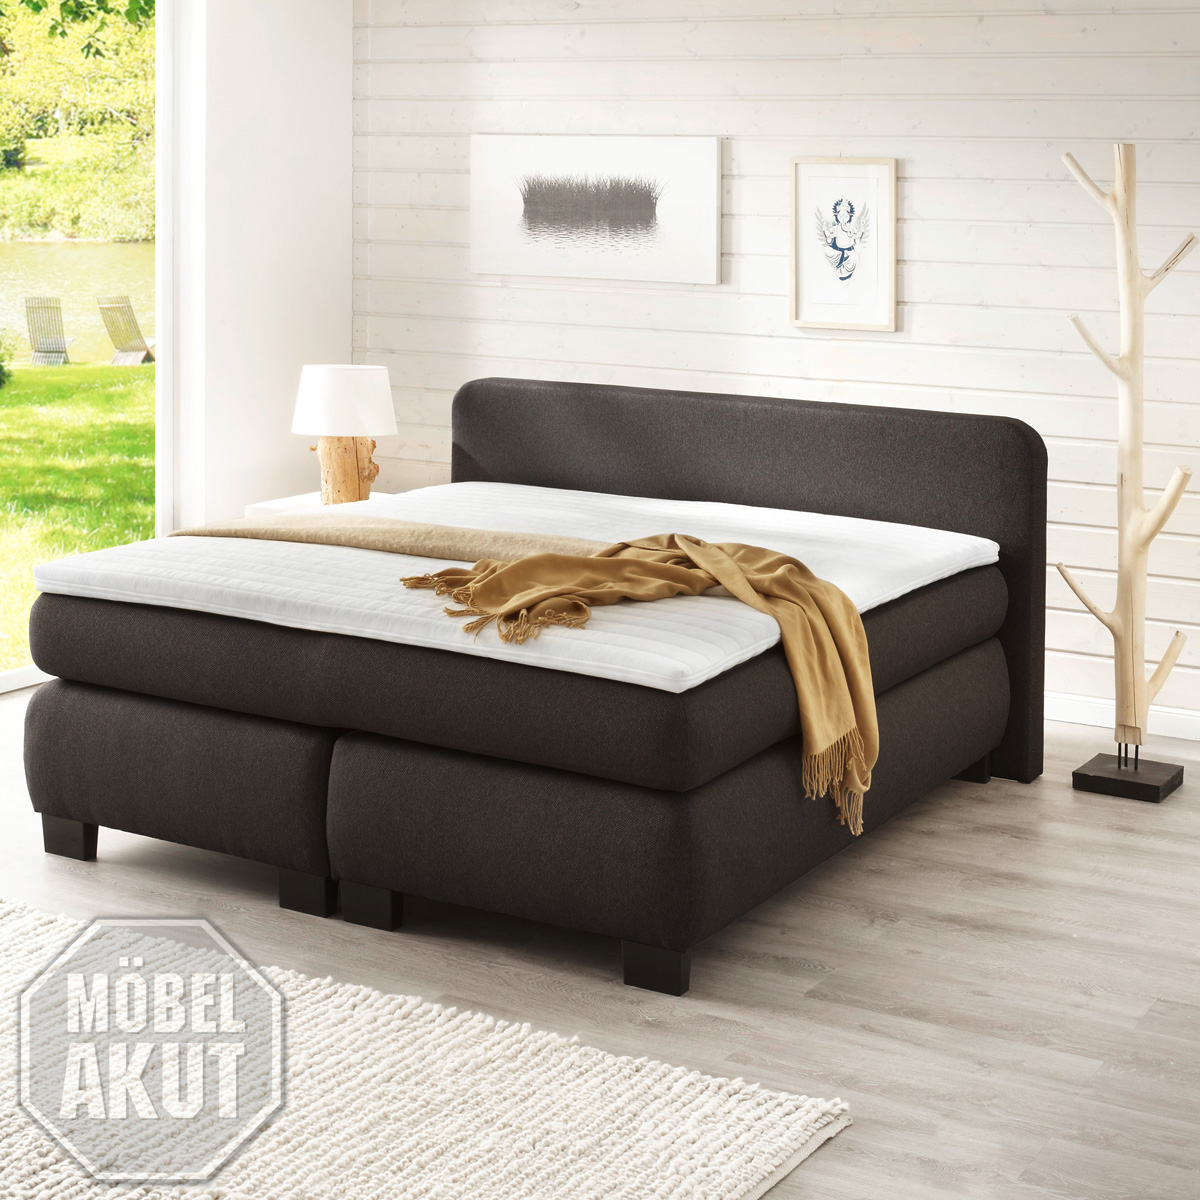 boxspringbett bx 300 bett schlafzimmerbett bonell federkern anthrazit 180x200 ebay. Black Bedroom Furniture Sets. Home Design Ideas